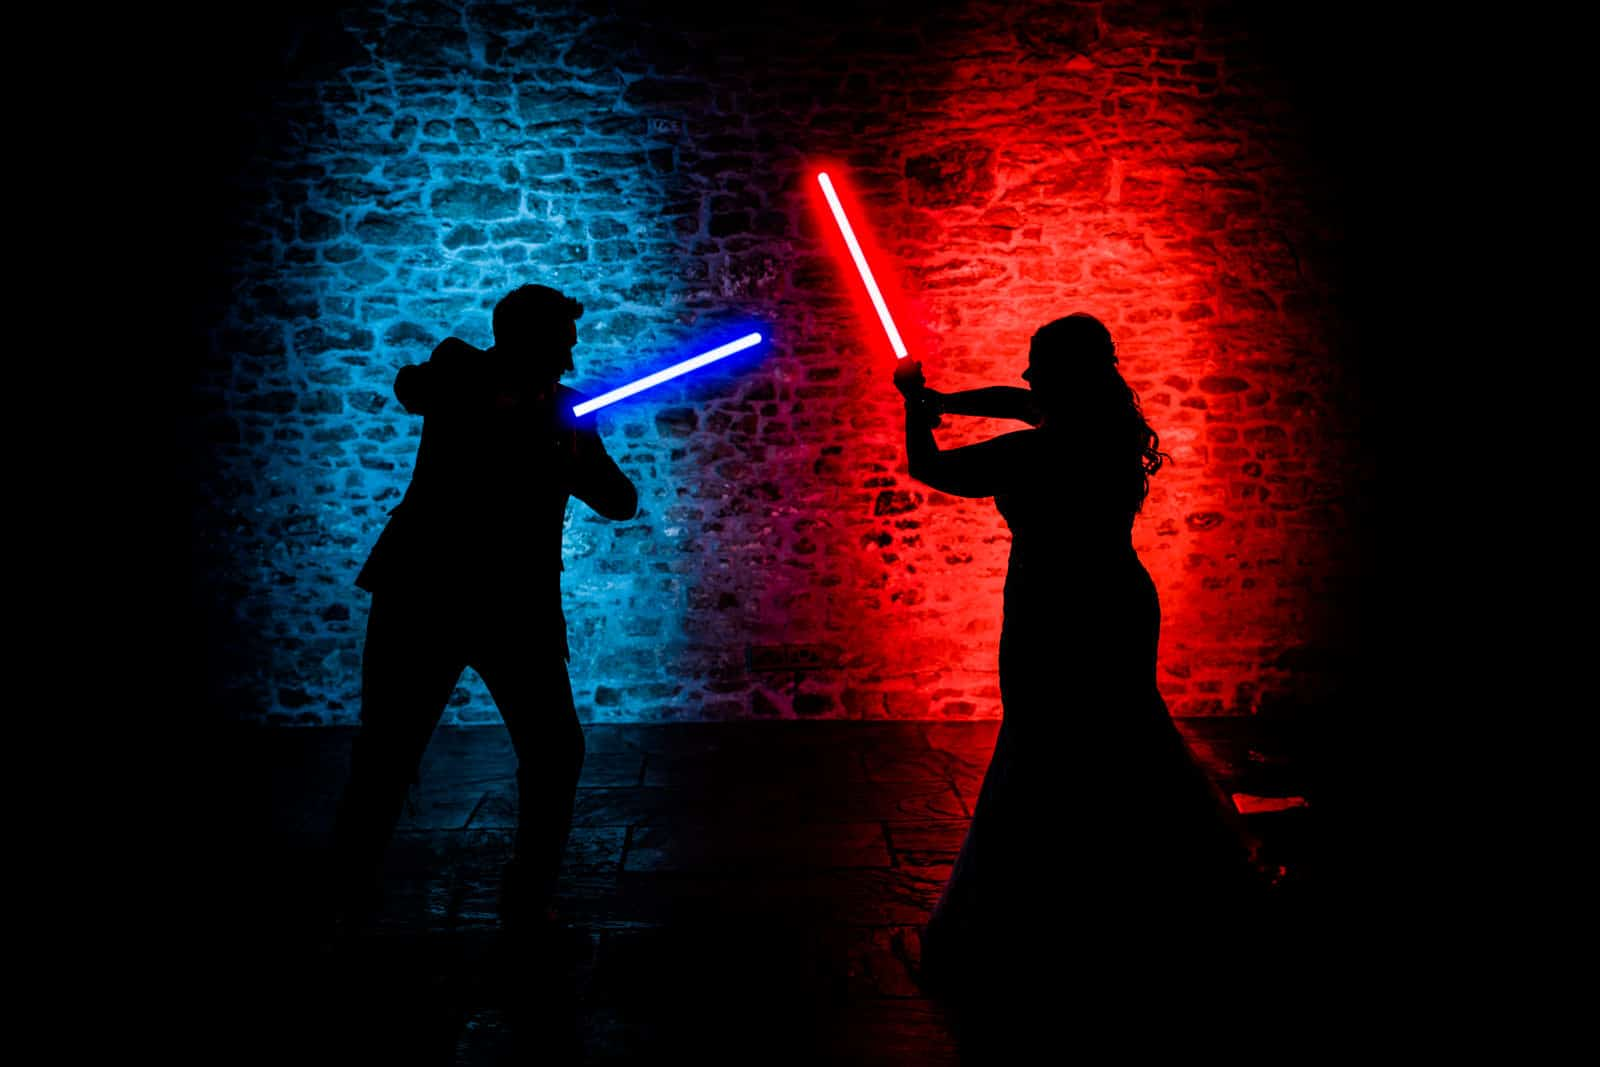 Star Wars Themed Wedding photo of Couple playing with lightsabers